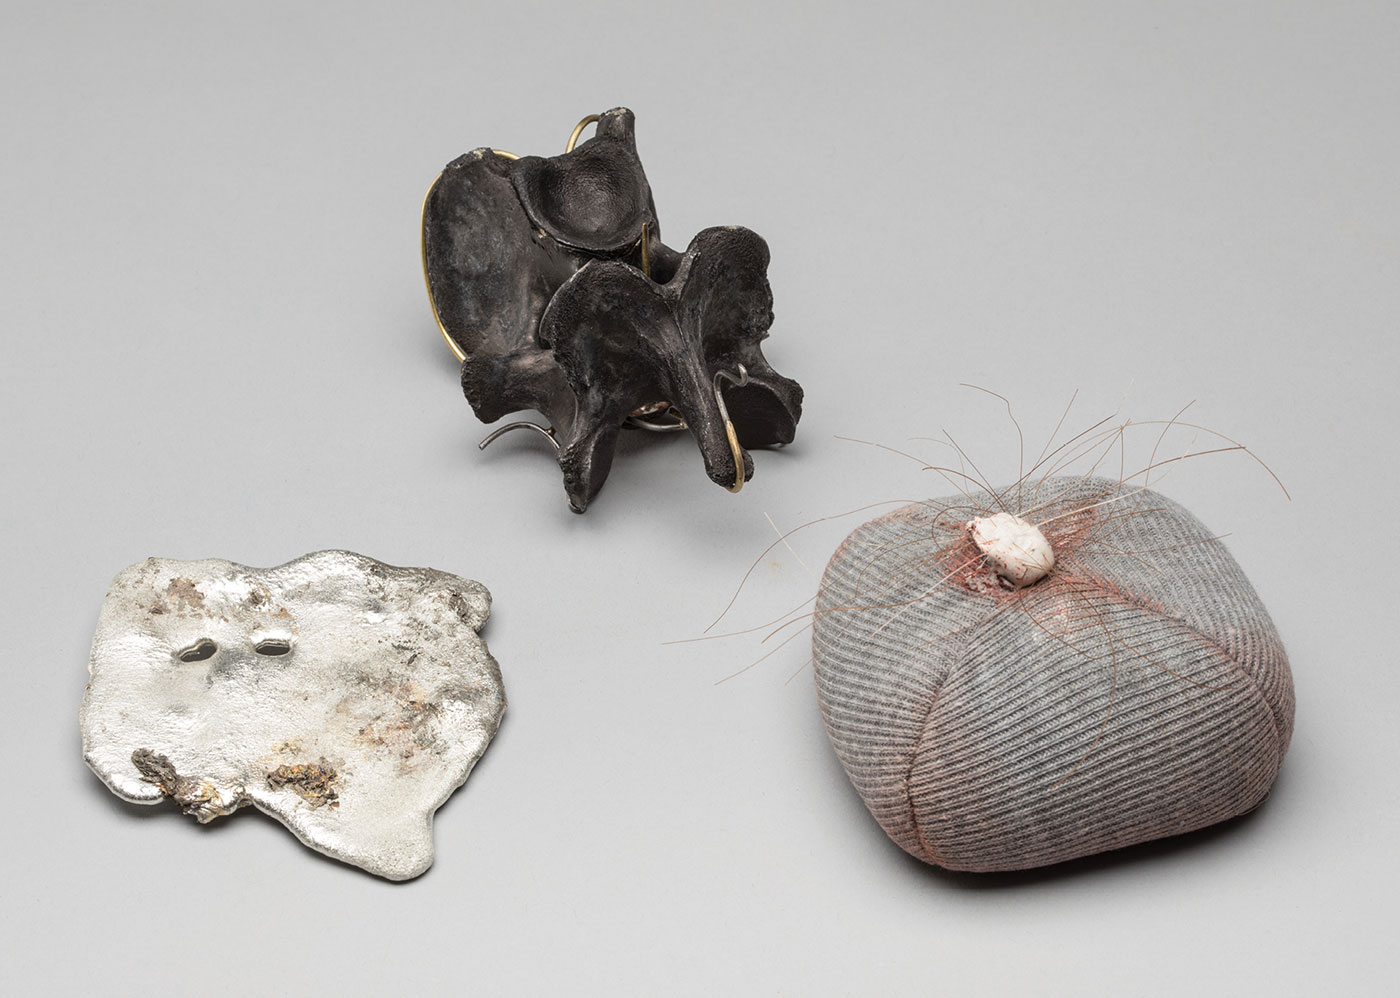 Alexis Richards - Three Objects (Bone and Costume, Growth, Burnt)